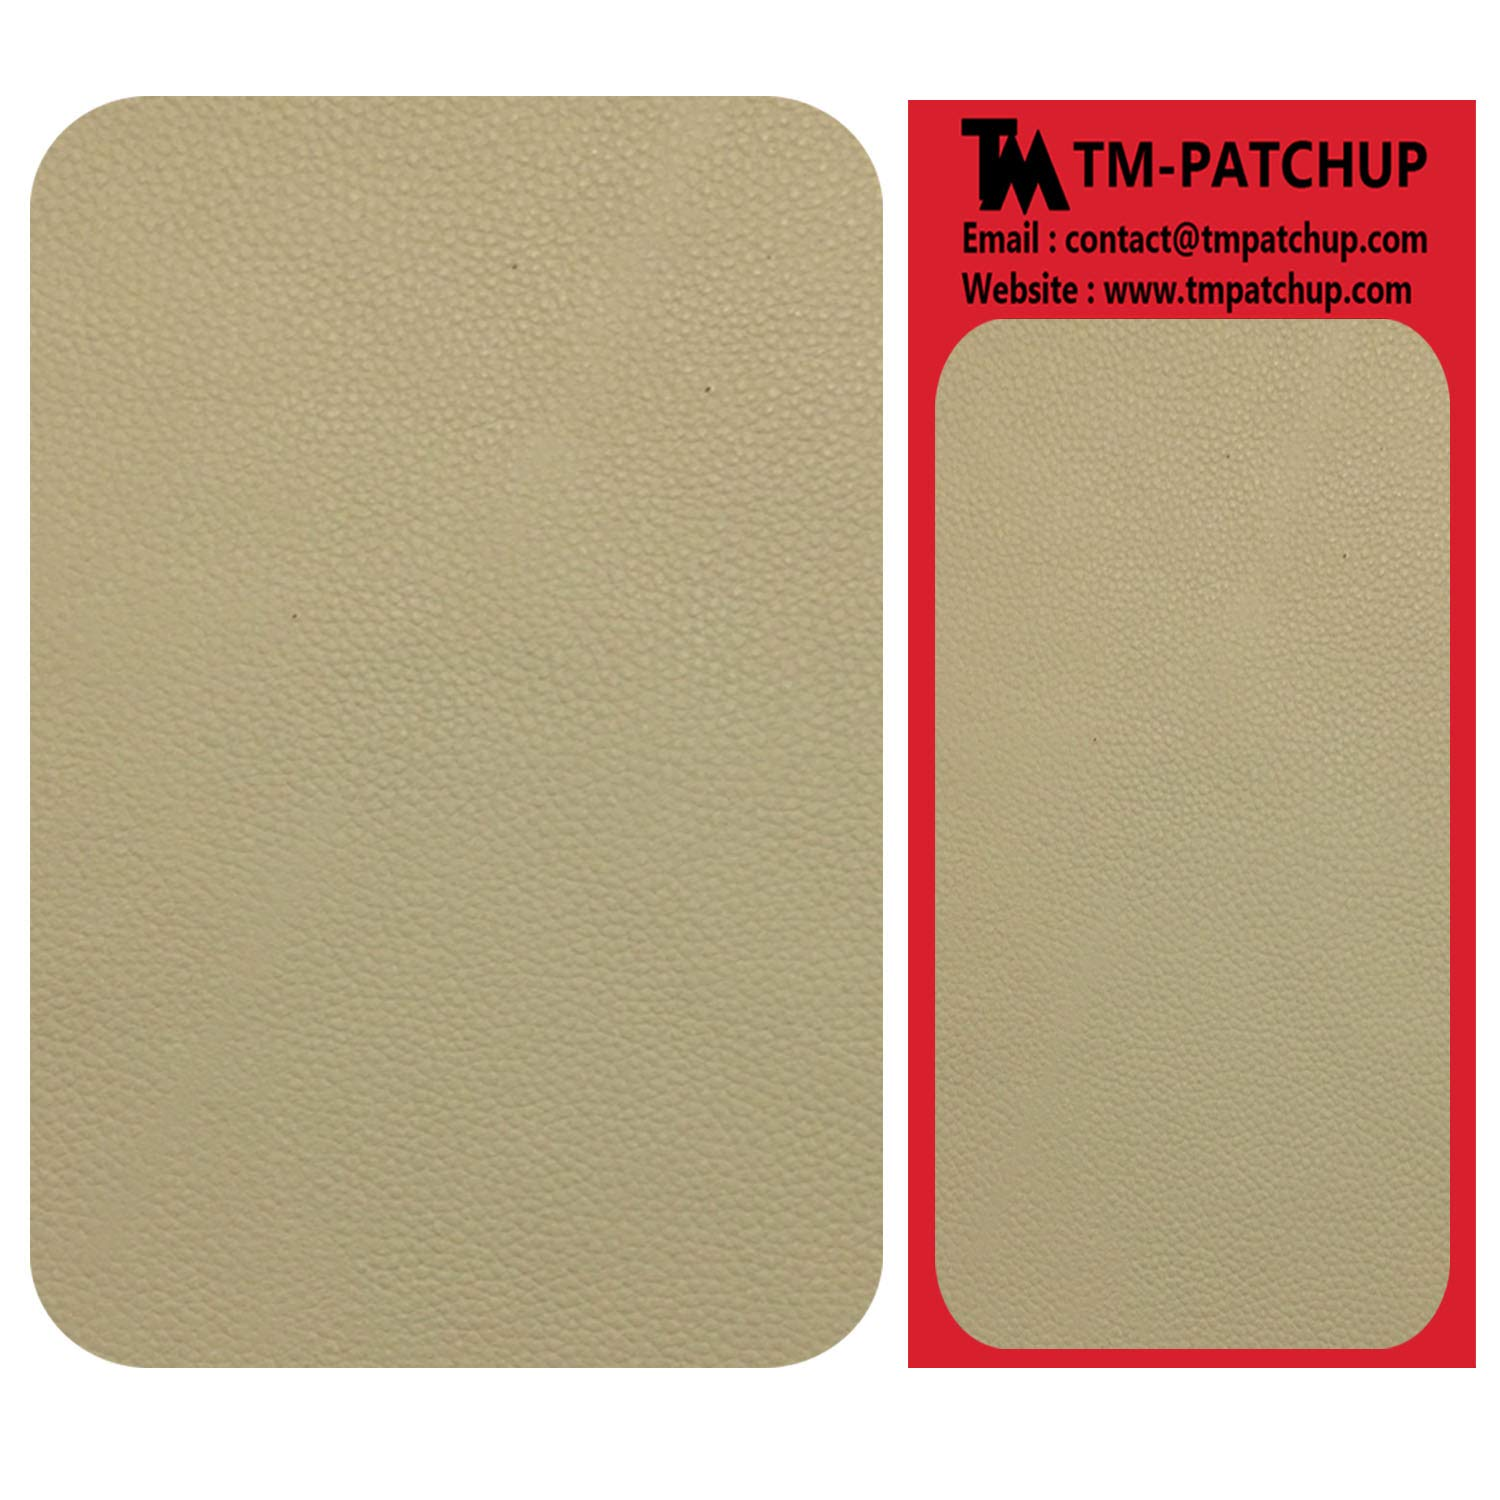 TMgroup, Leather Couch Patch, Genuine Faux Leather Repair Patch, Peel and Stick for Sofas, car Seats, Hand Bags,Furniture, Jackets, Large Size 8-inch x 11-inch (Medium Beige)